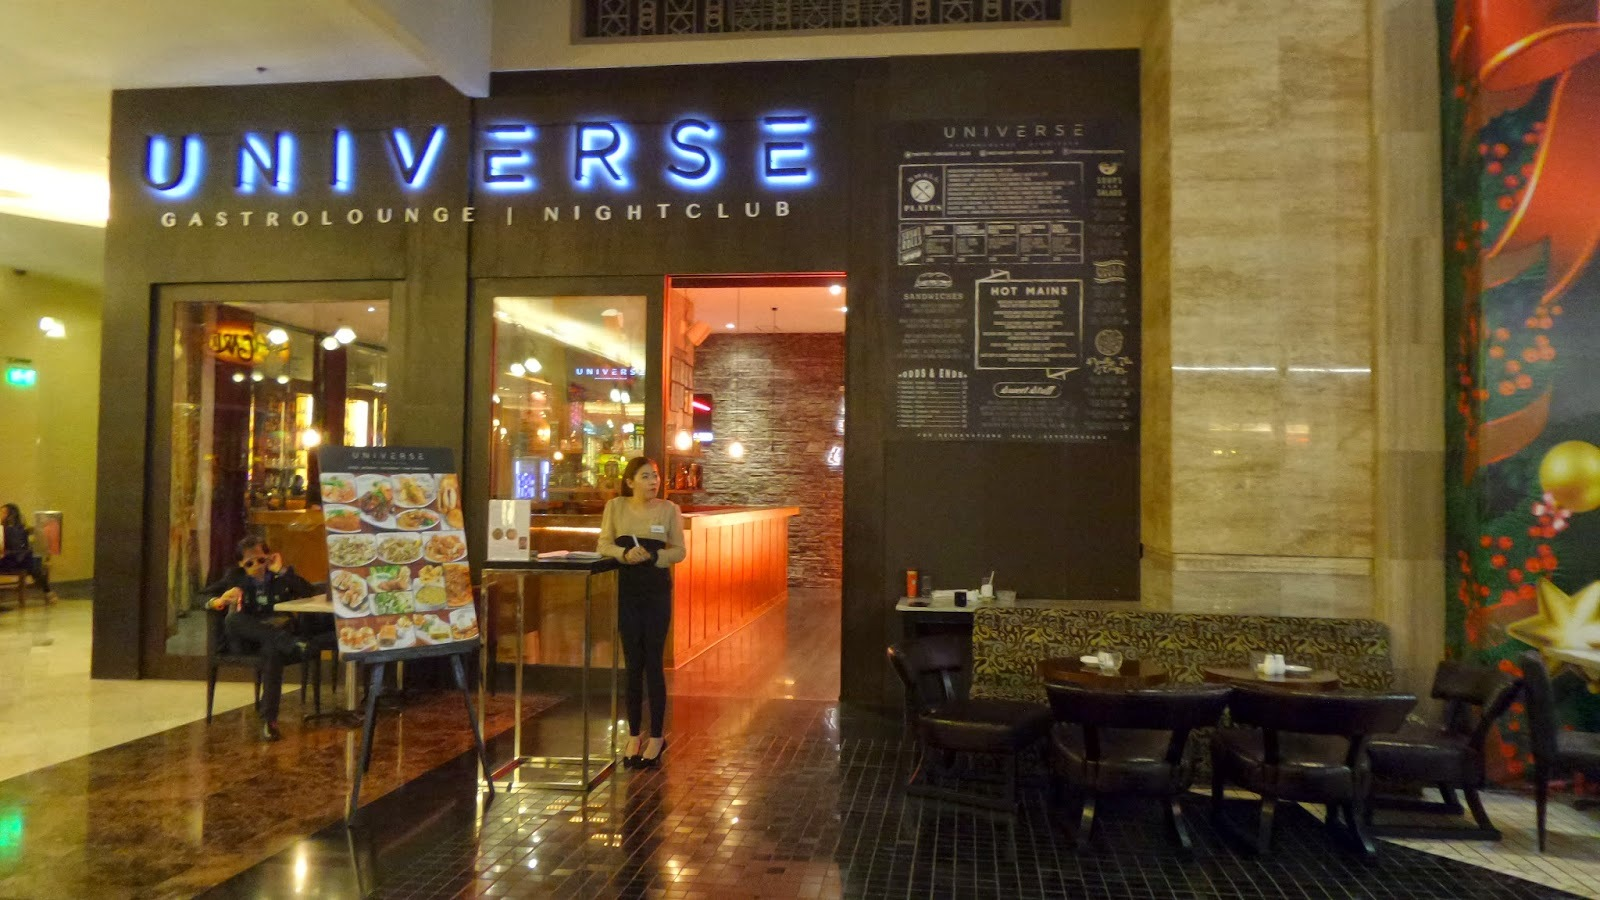 Eat Out and Party Hard at Universe Gastrolounge and Nightclub